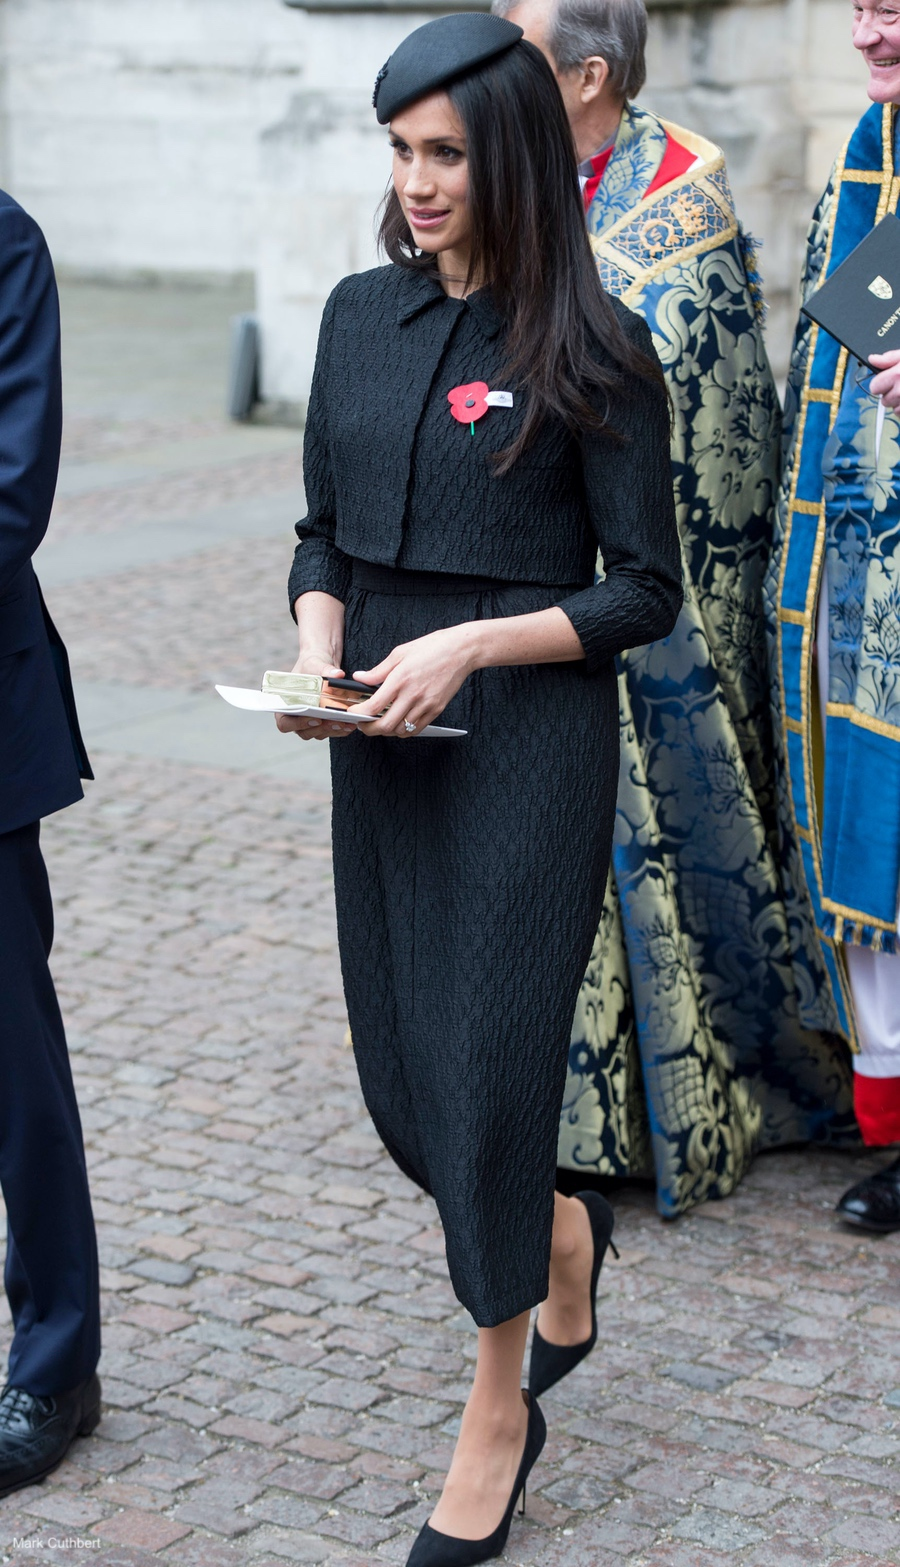 Meghan Markle's outfit during the ANZAC Day service at Westminster Abbey